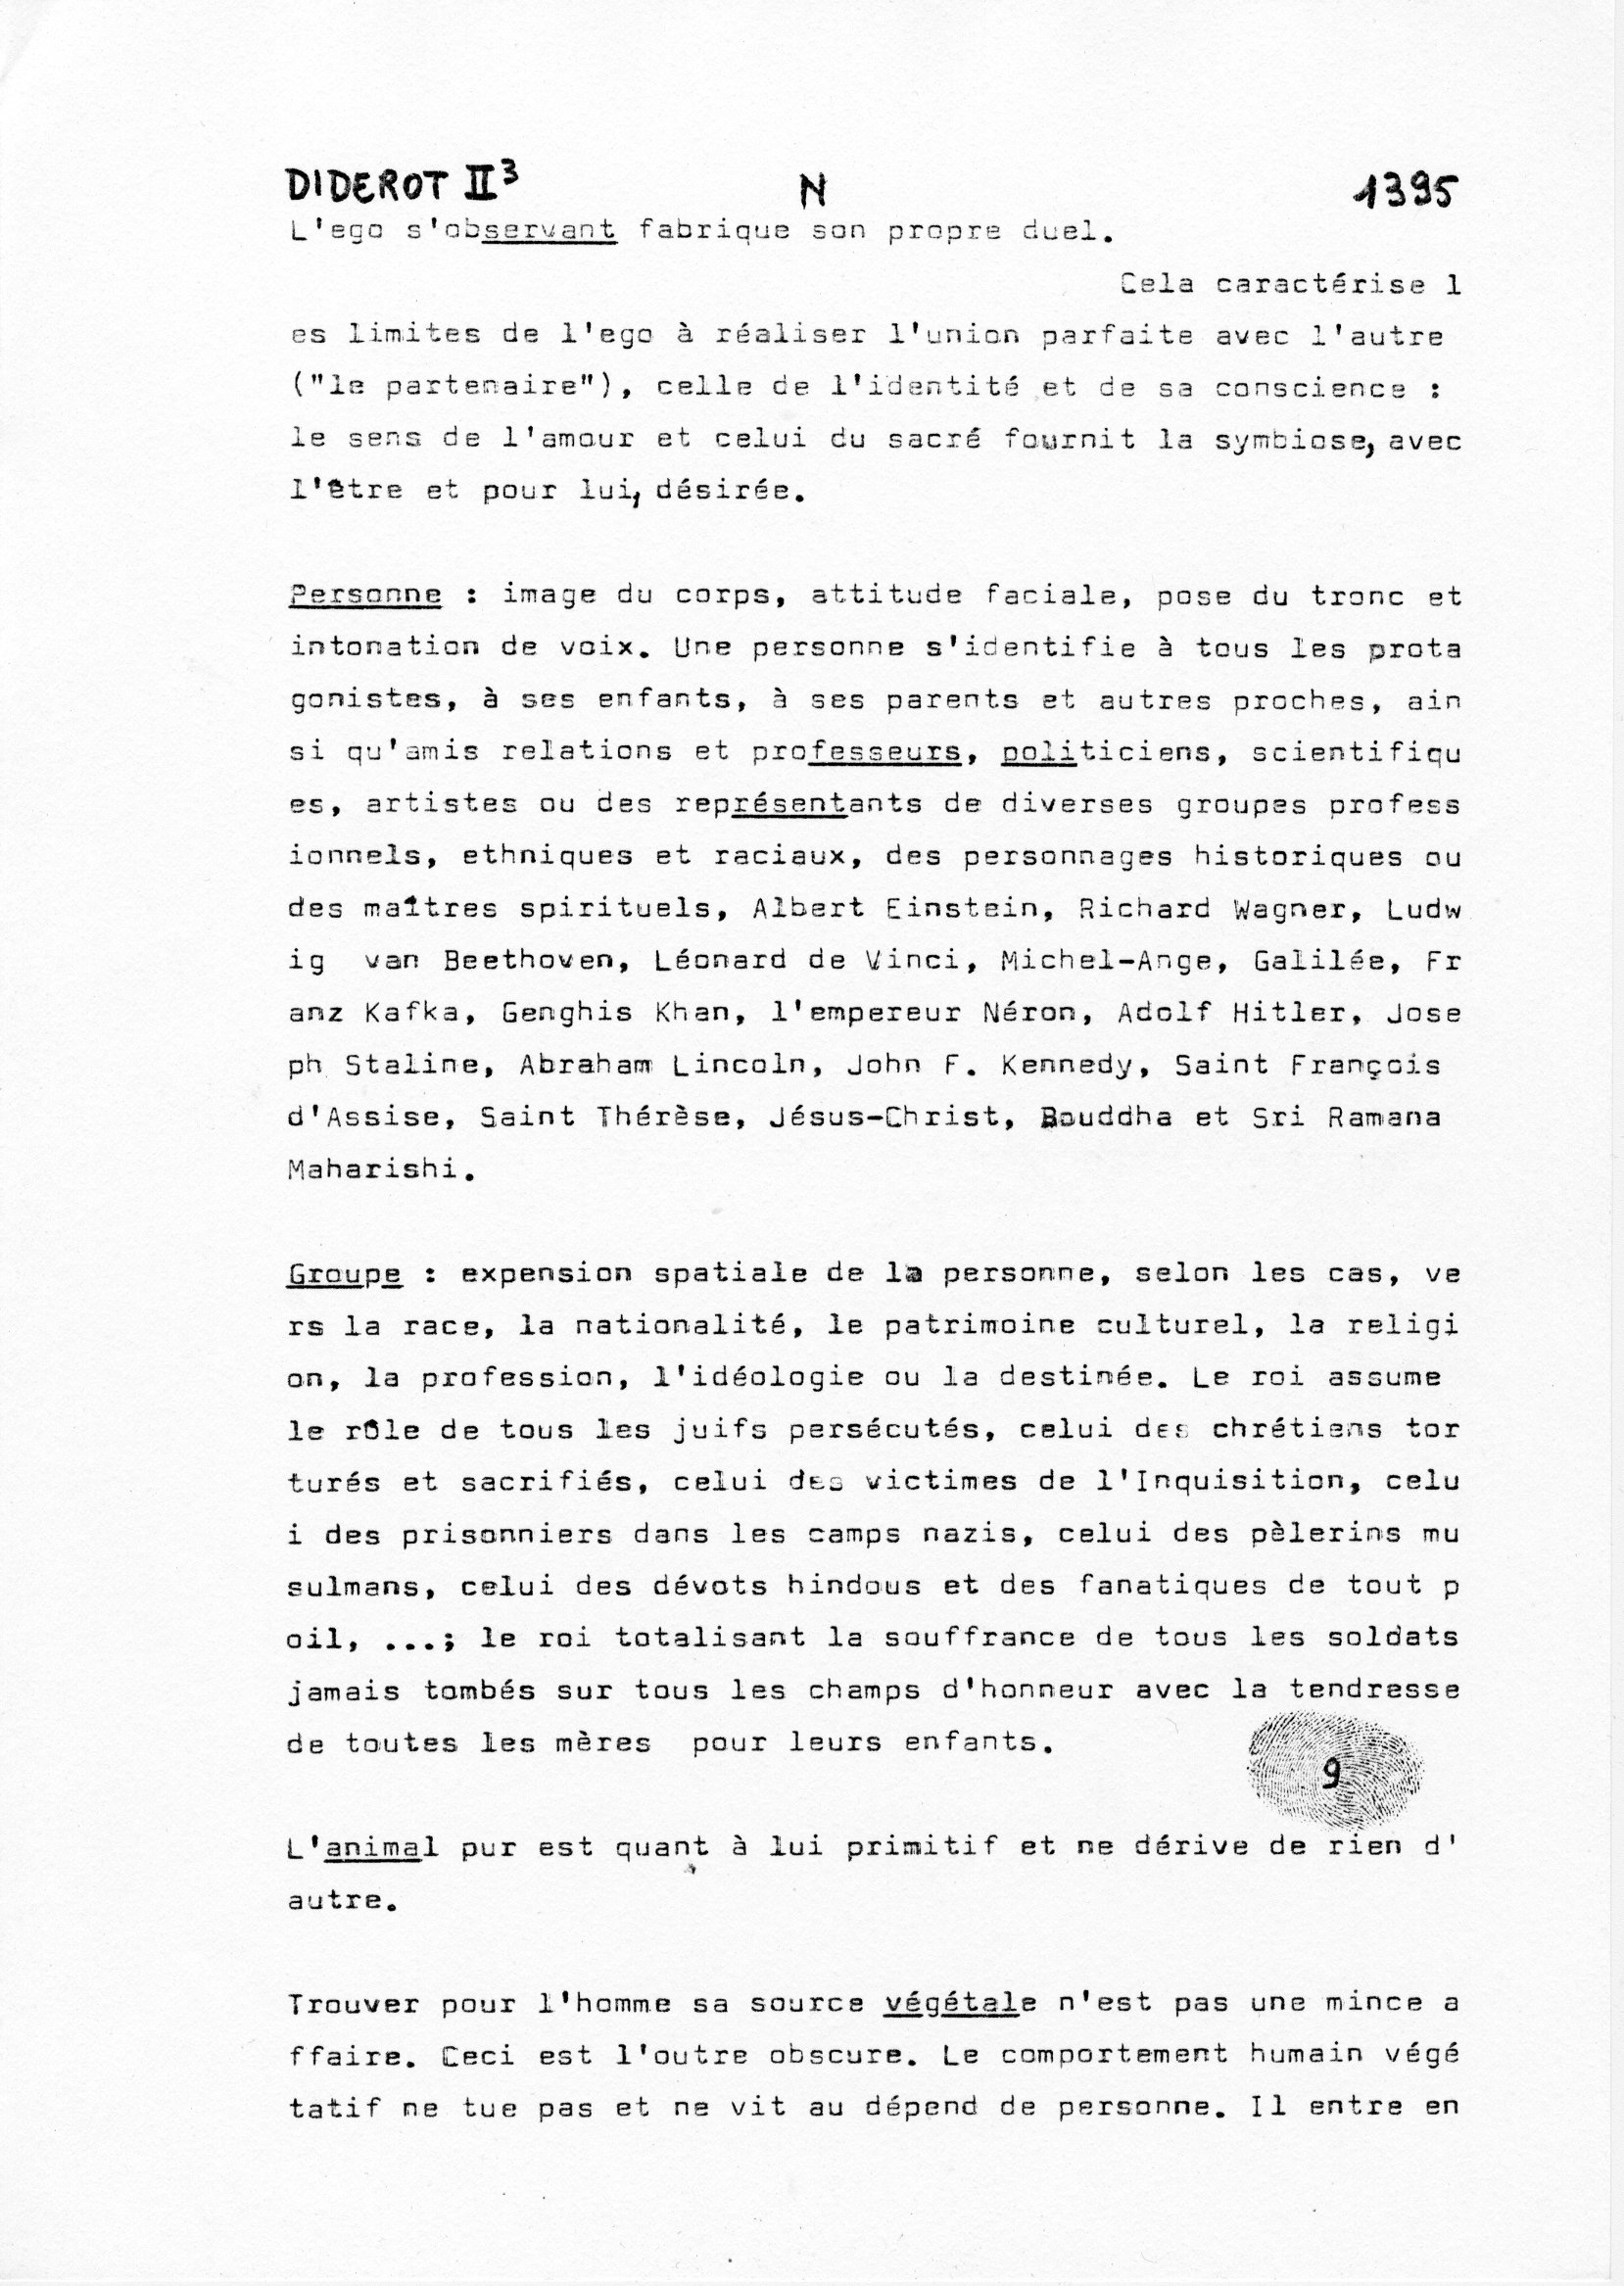 page 1395 Diderot II p3 N